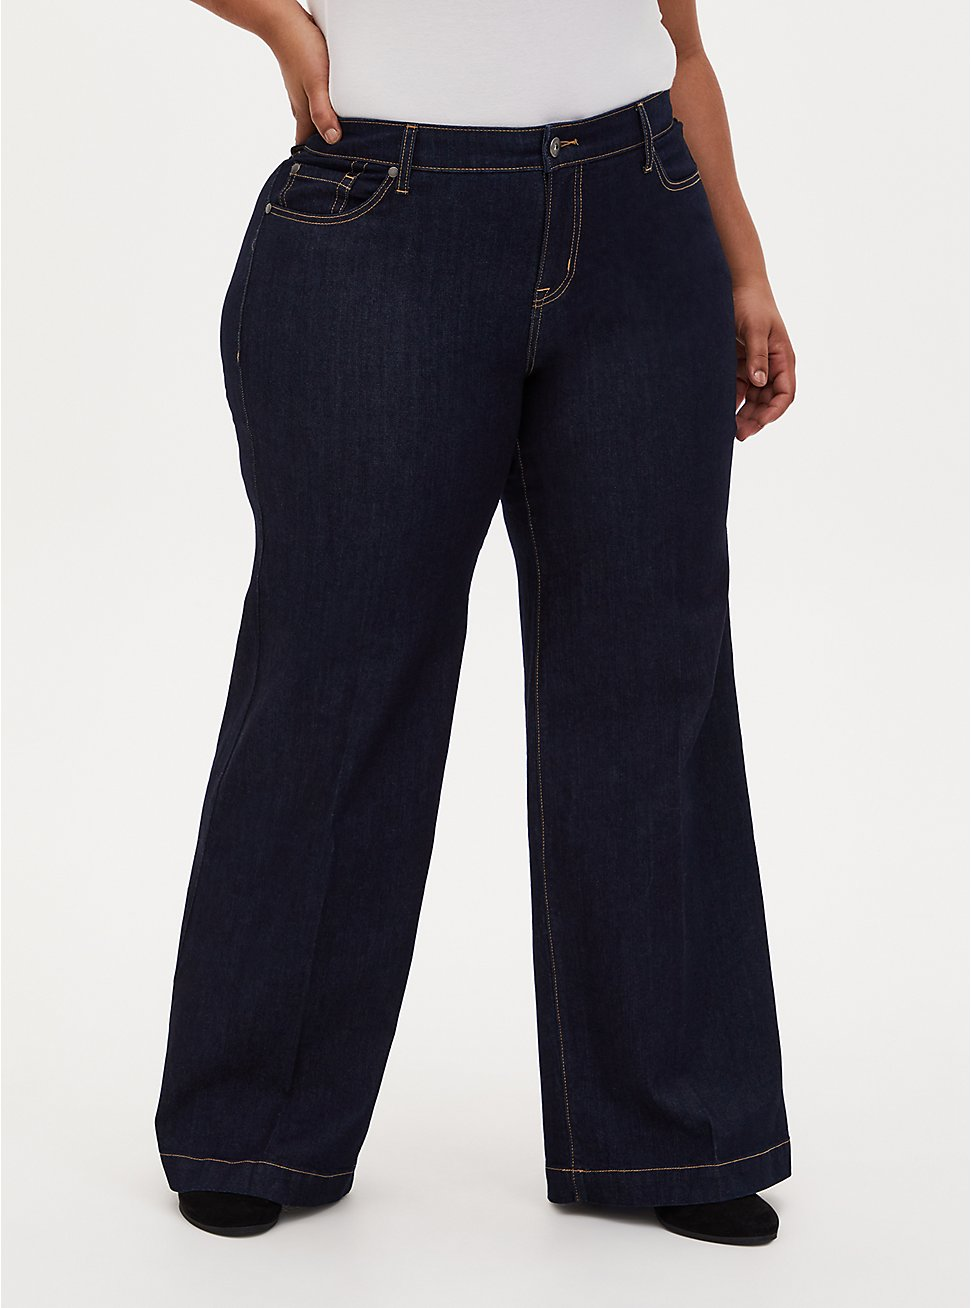 High Rise Wide Leg Jean - Vintage Stretch Dark Wash, OZONE, hi-res